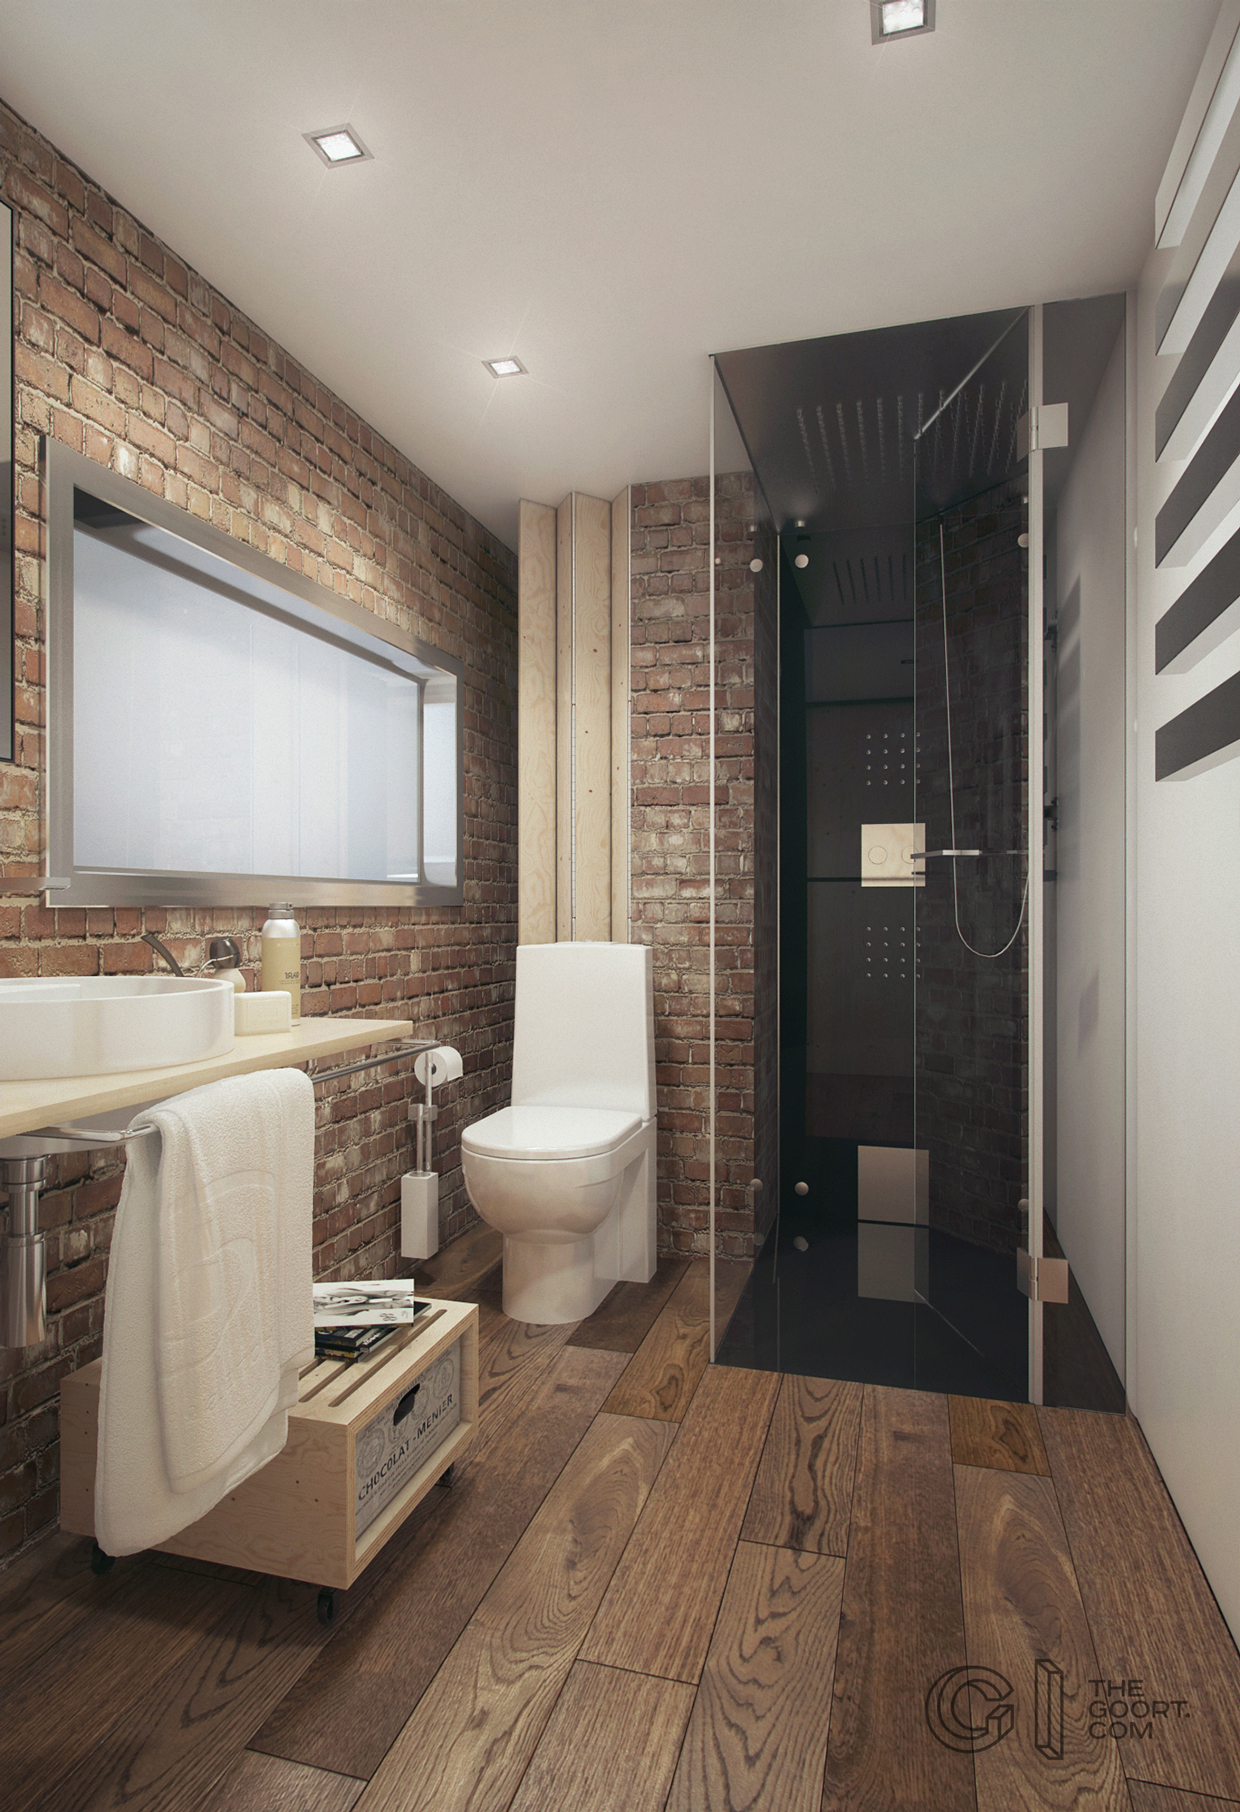 brick-and-wood-bathroom | interior design ideas.